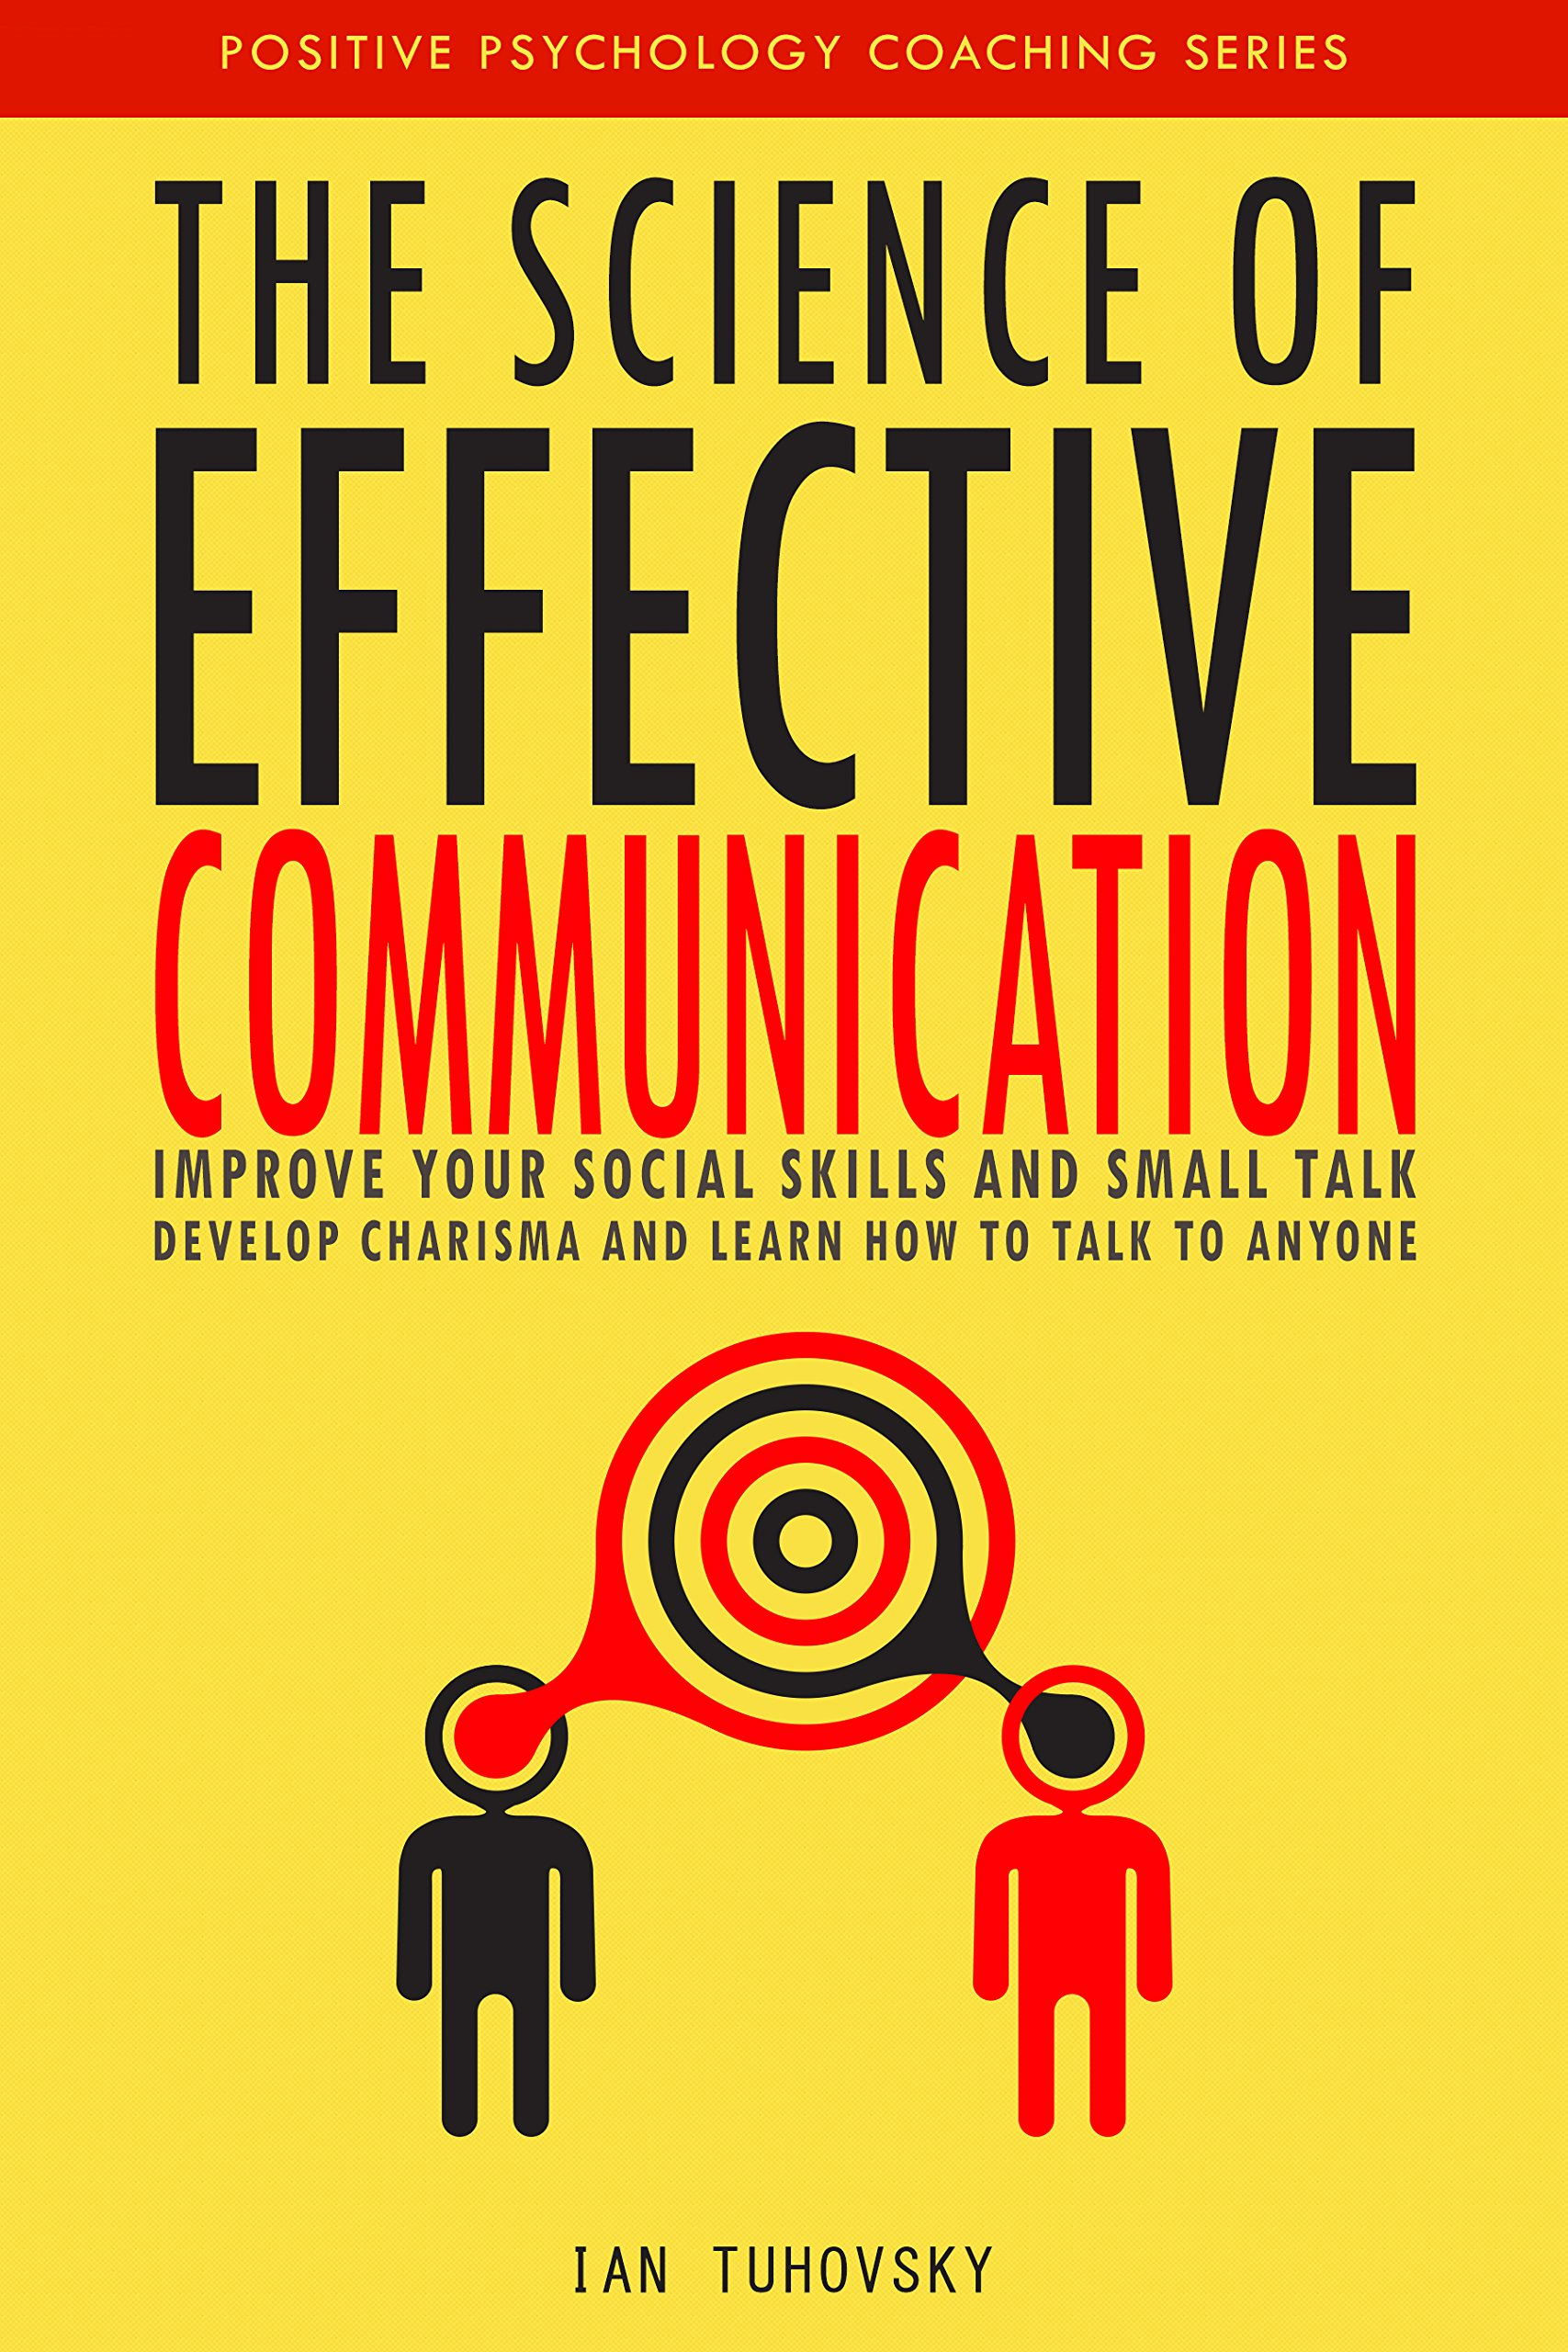 The Science Of Effective Communication  Improve Your Social Skills And Small Talk Develop Charisma And Learn How To Talk To Anyone  Positive Psychology Coaching Series Book 15   English Edition